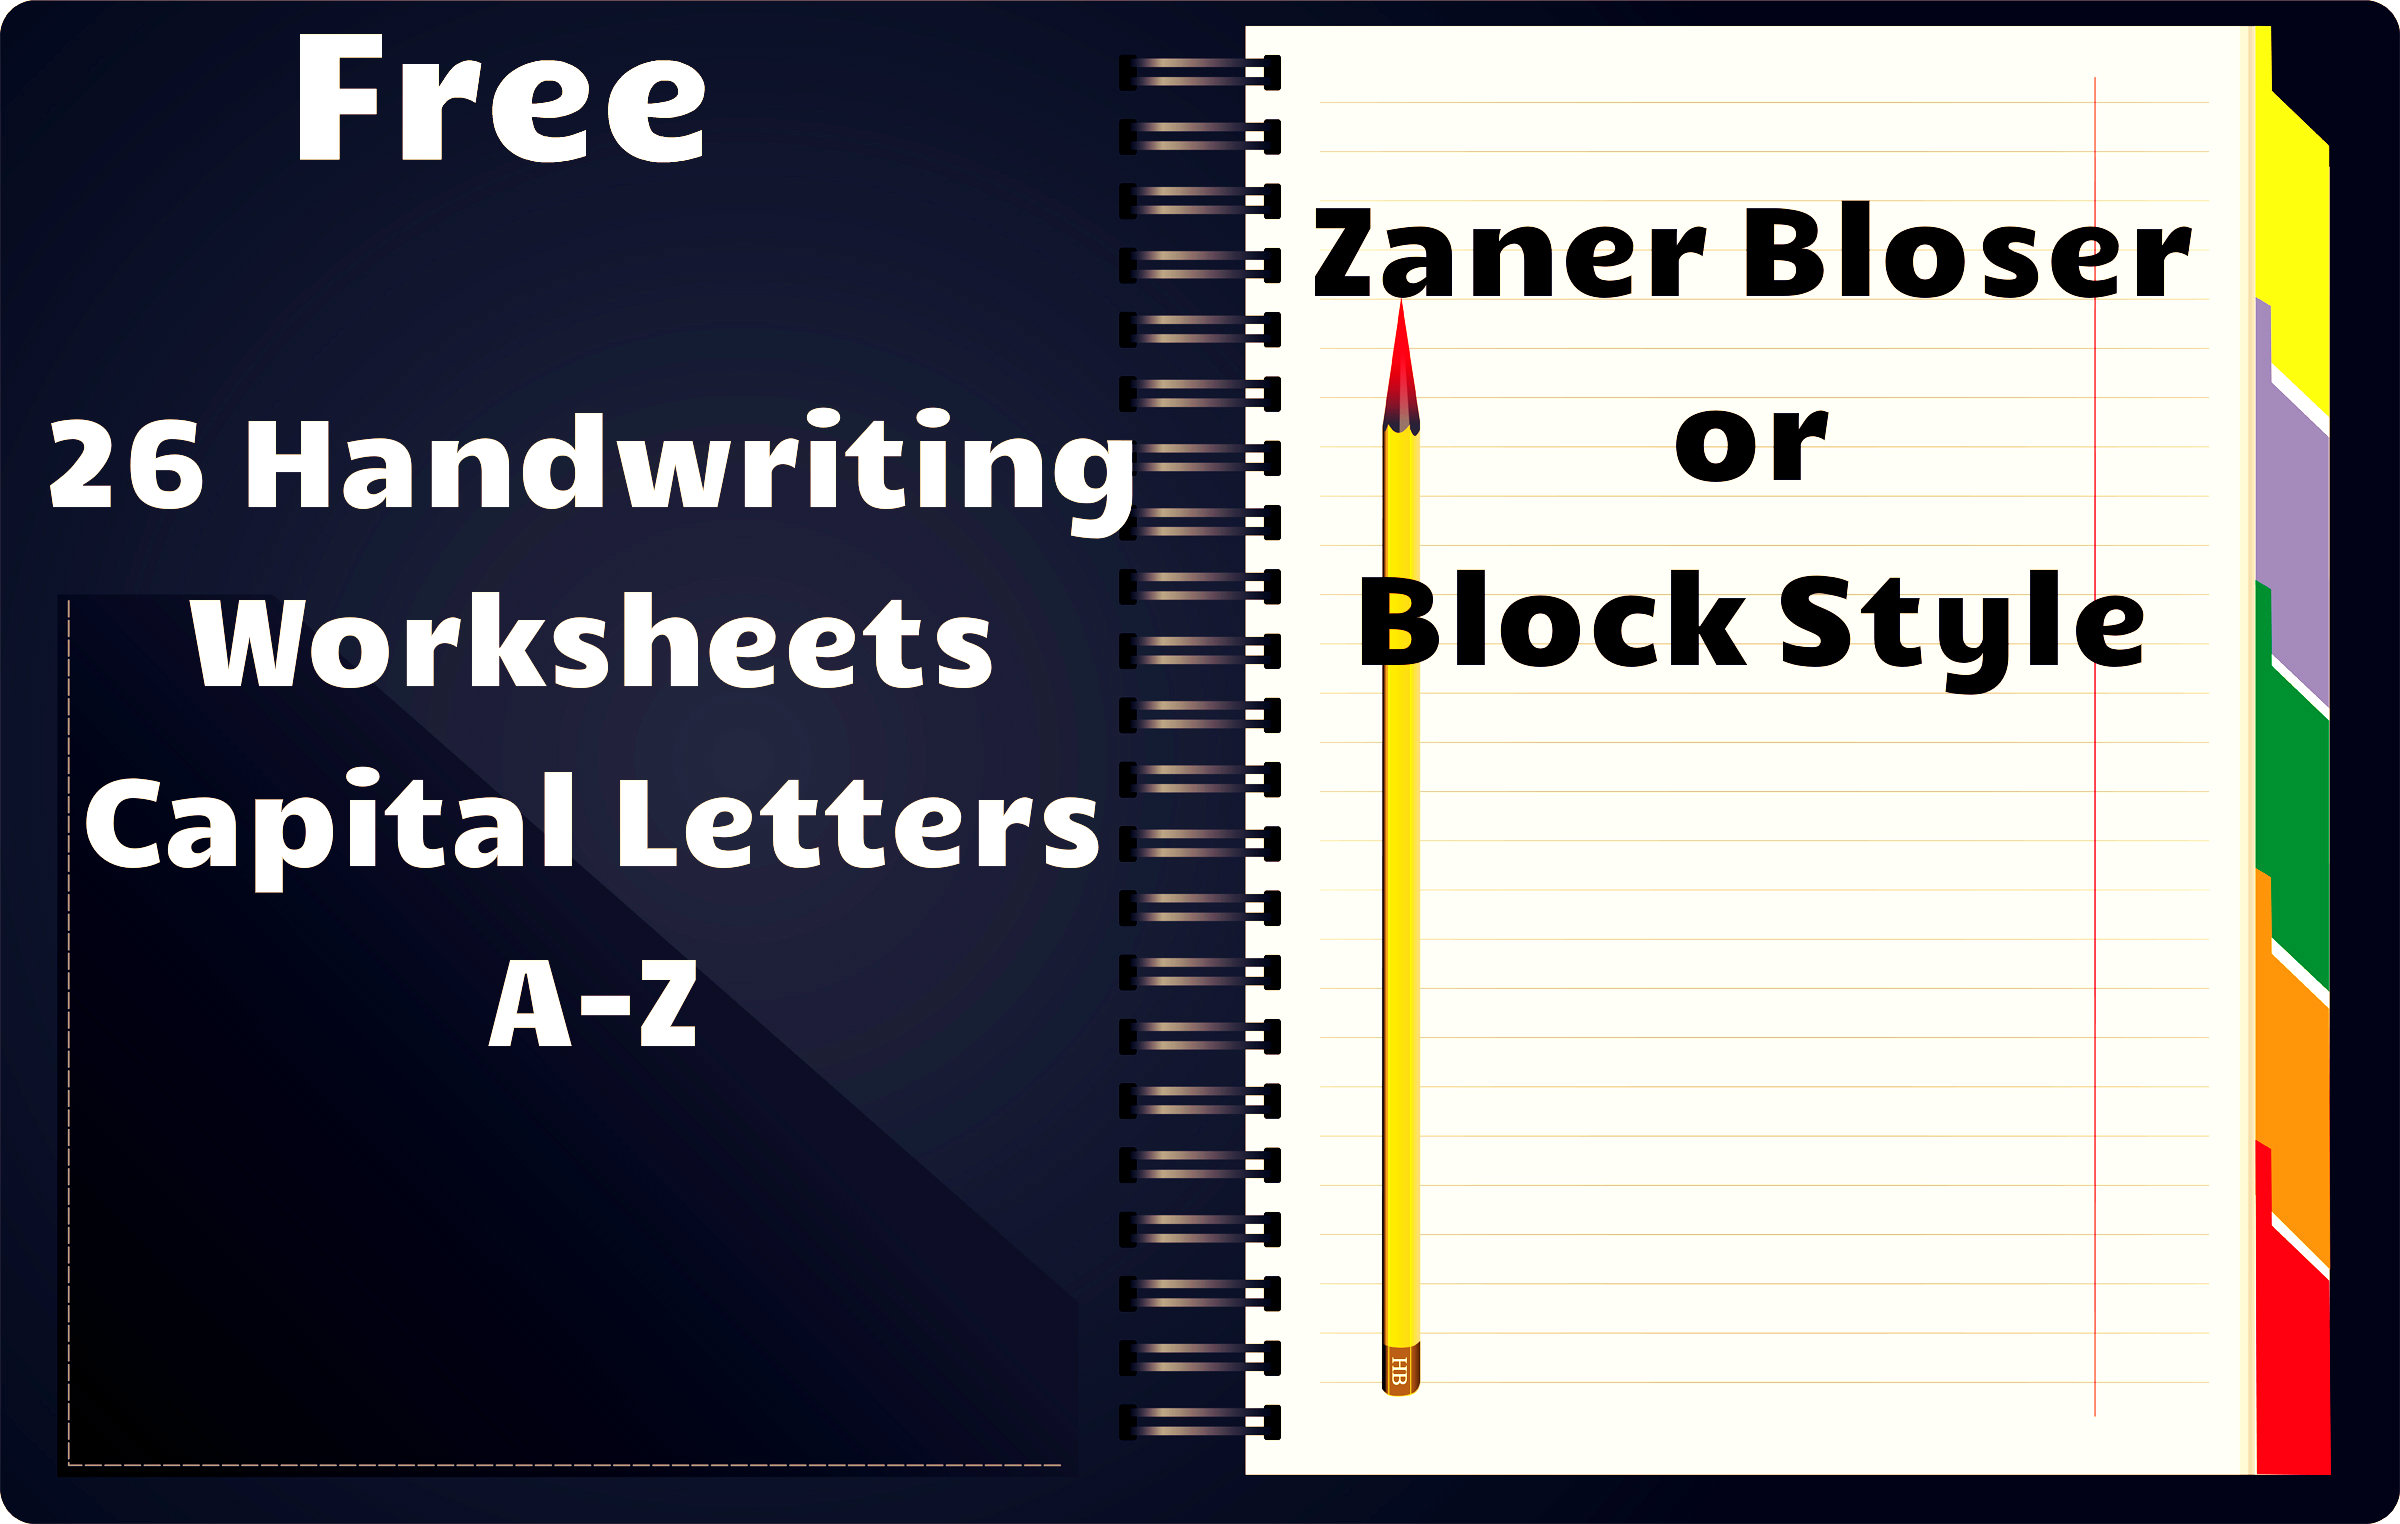 Printables Zaner Bloser Handwriting Worksheets free handwriting worksheets a z capital zaner bloser style